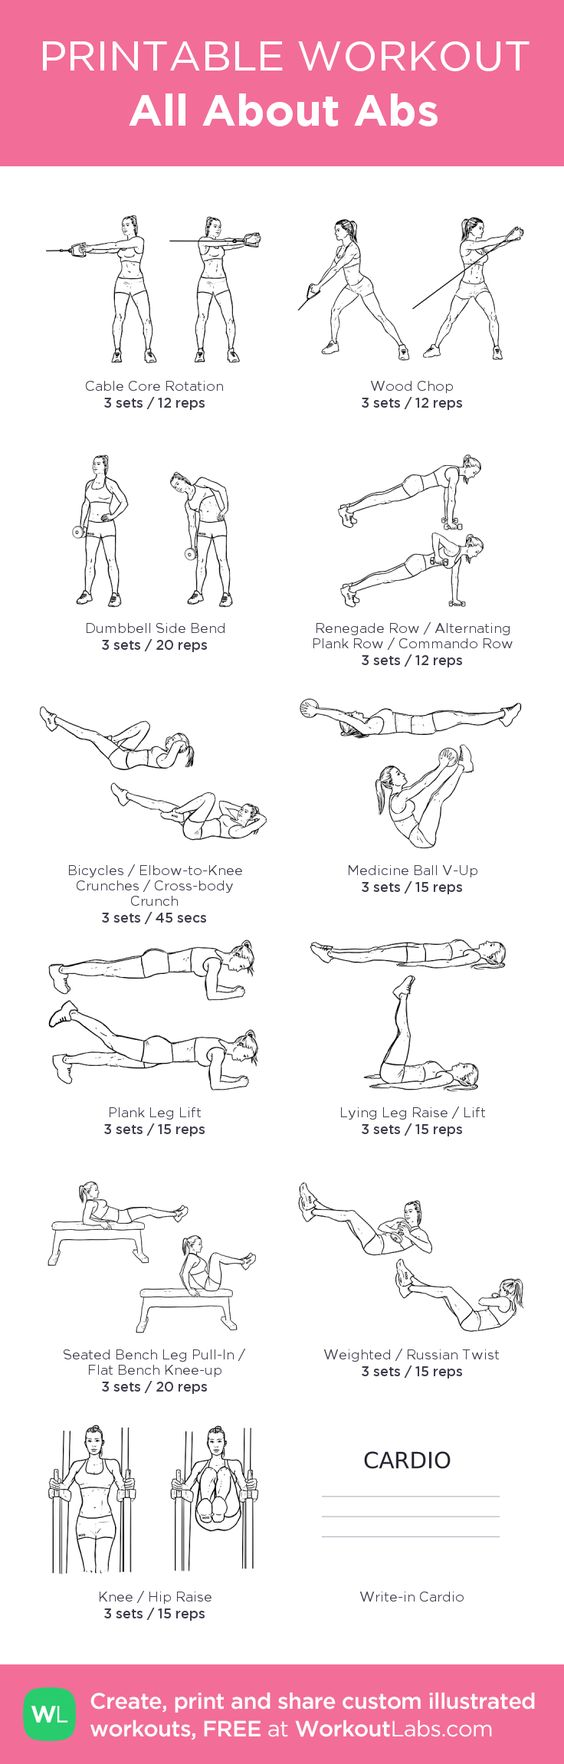 medium resolution of 5 core workouts from pinterest pinterest pinterest workouts core workouts core